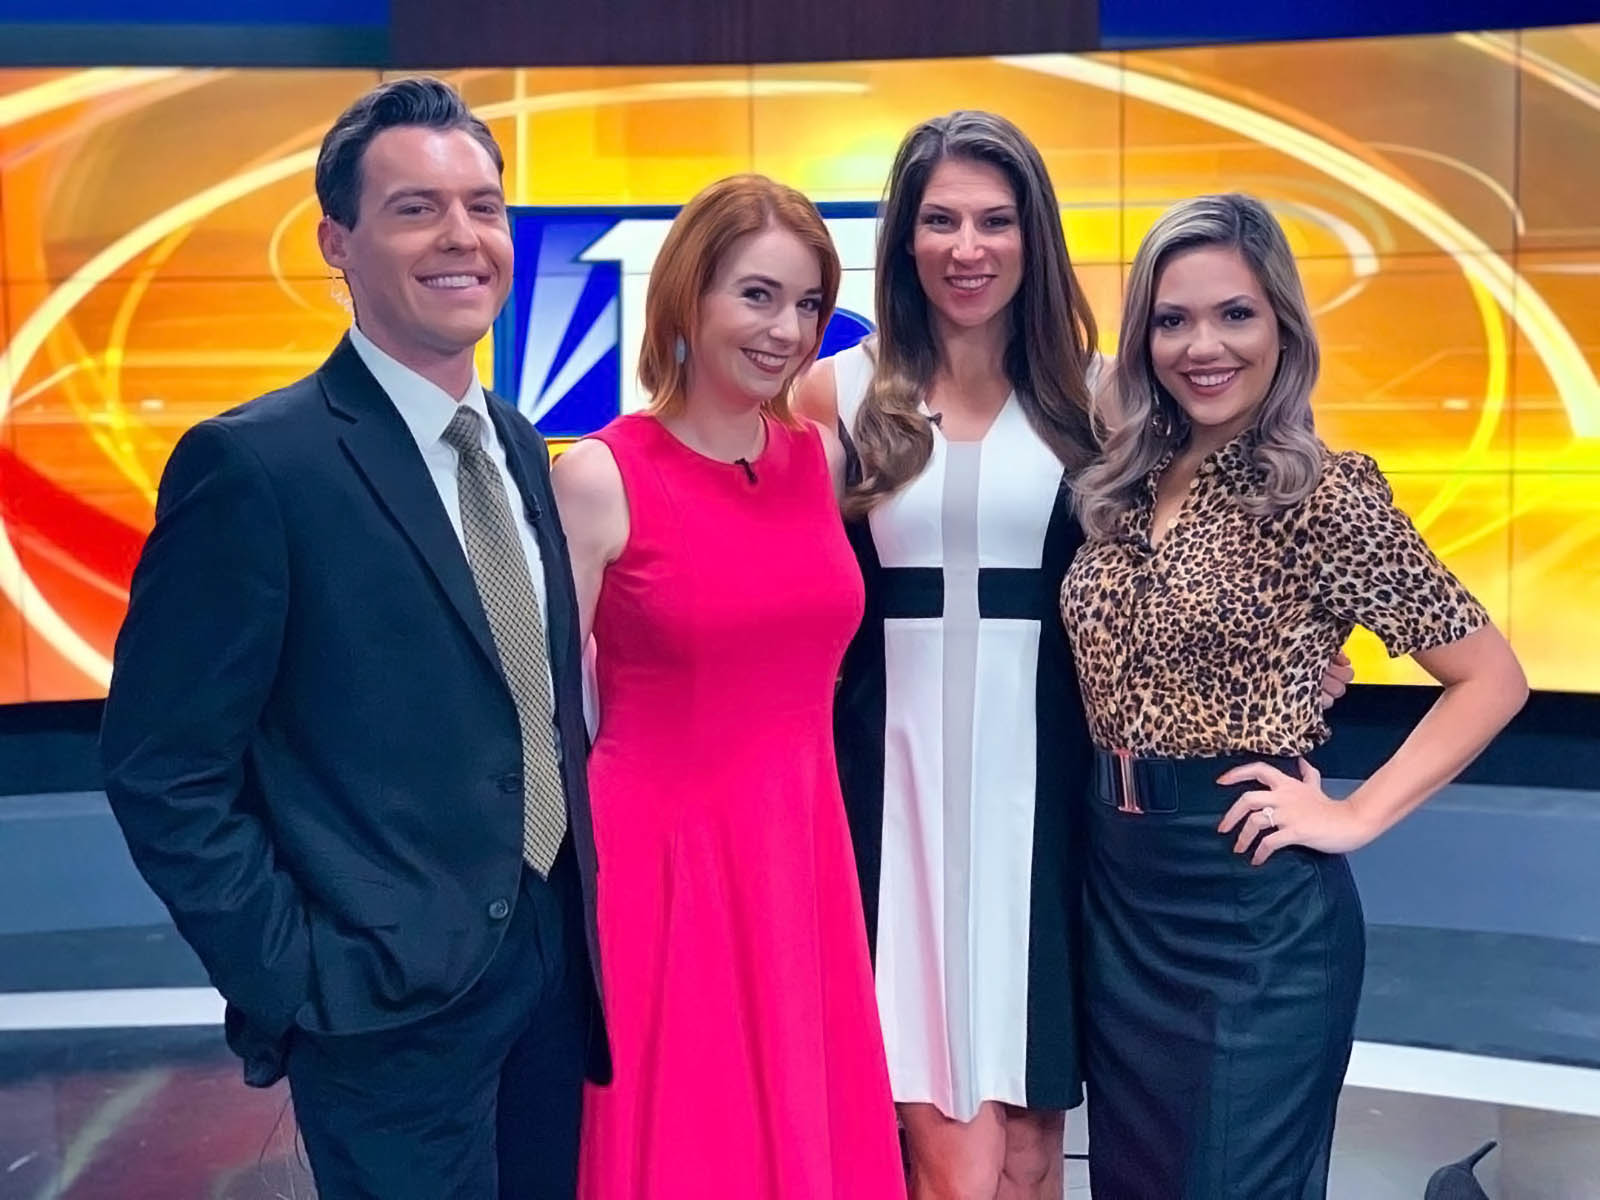 Matthew McClellan, Brainey, Kellie Cowan, and Vanessa Ruffes at Fox 13 News Tampa Bay